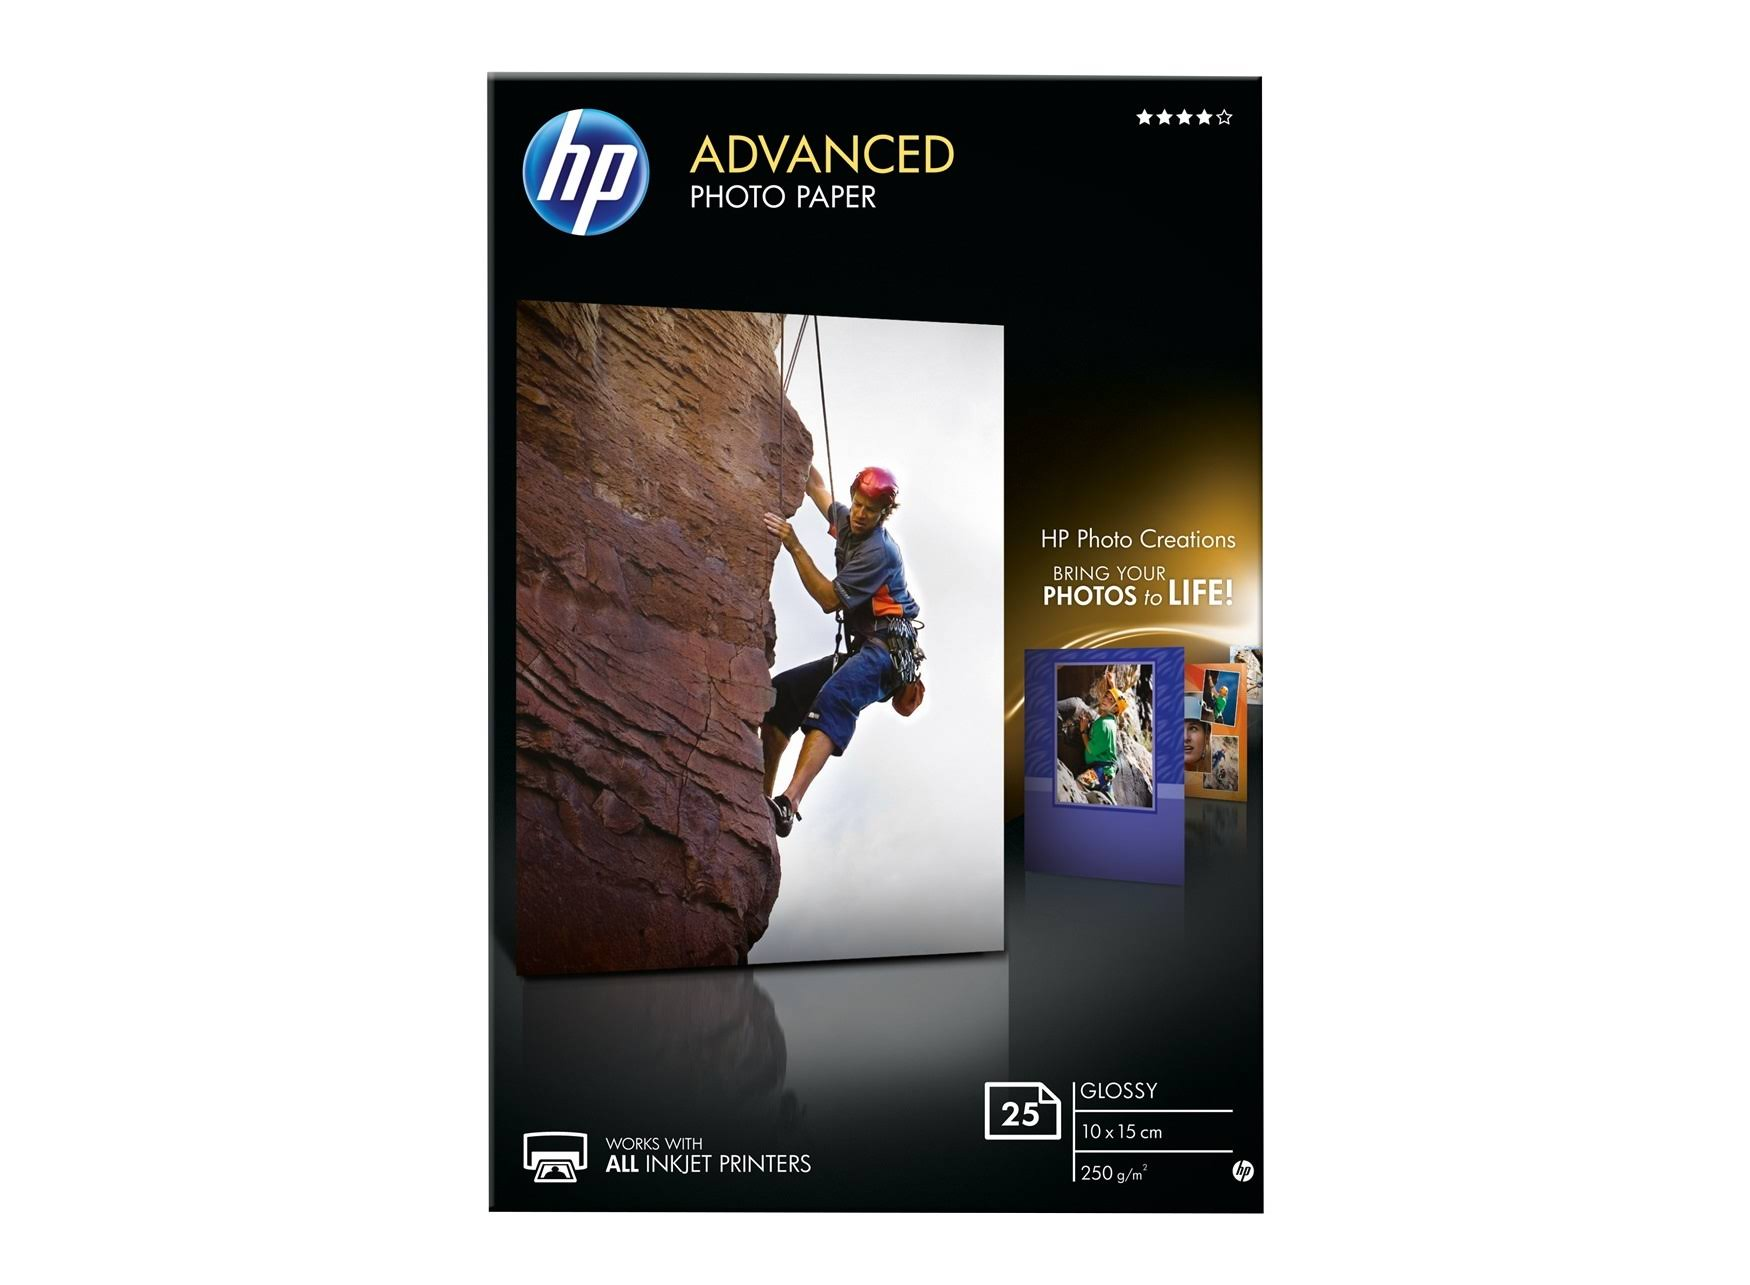 HP Advanced Borderless Glossy Photo Paper - White, 10x15cm, 25 Sheet